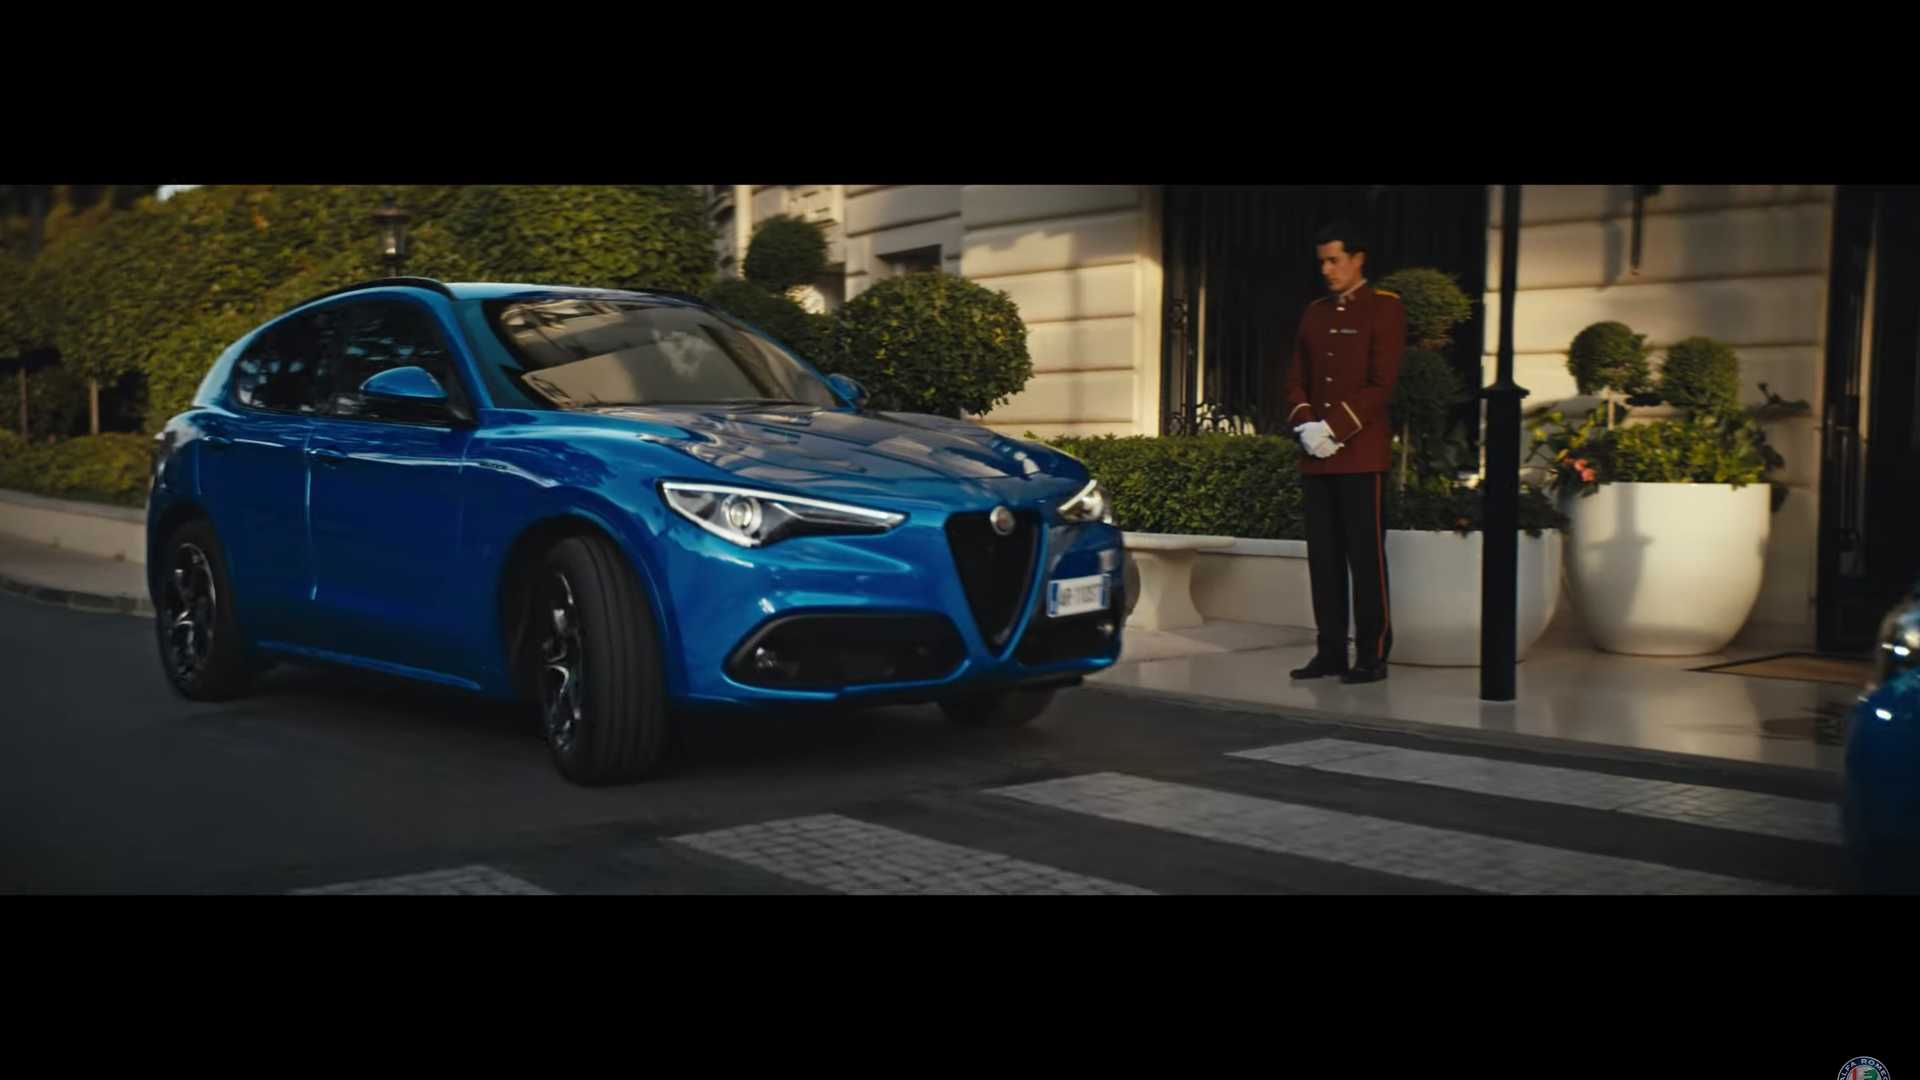 2020 Alfa Romeo Giulia And Stelvio Ad With Kimi Raikkonen